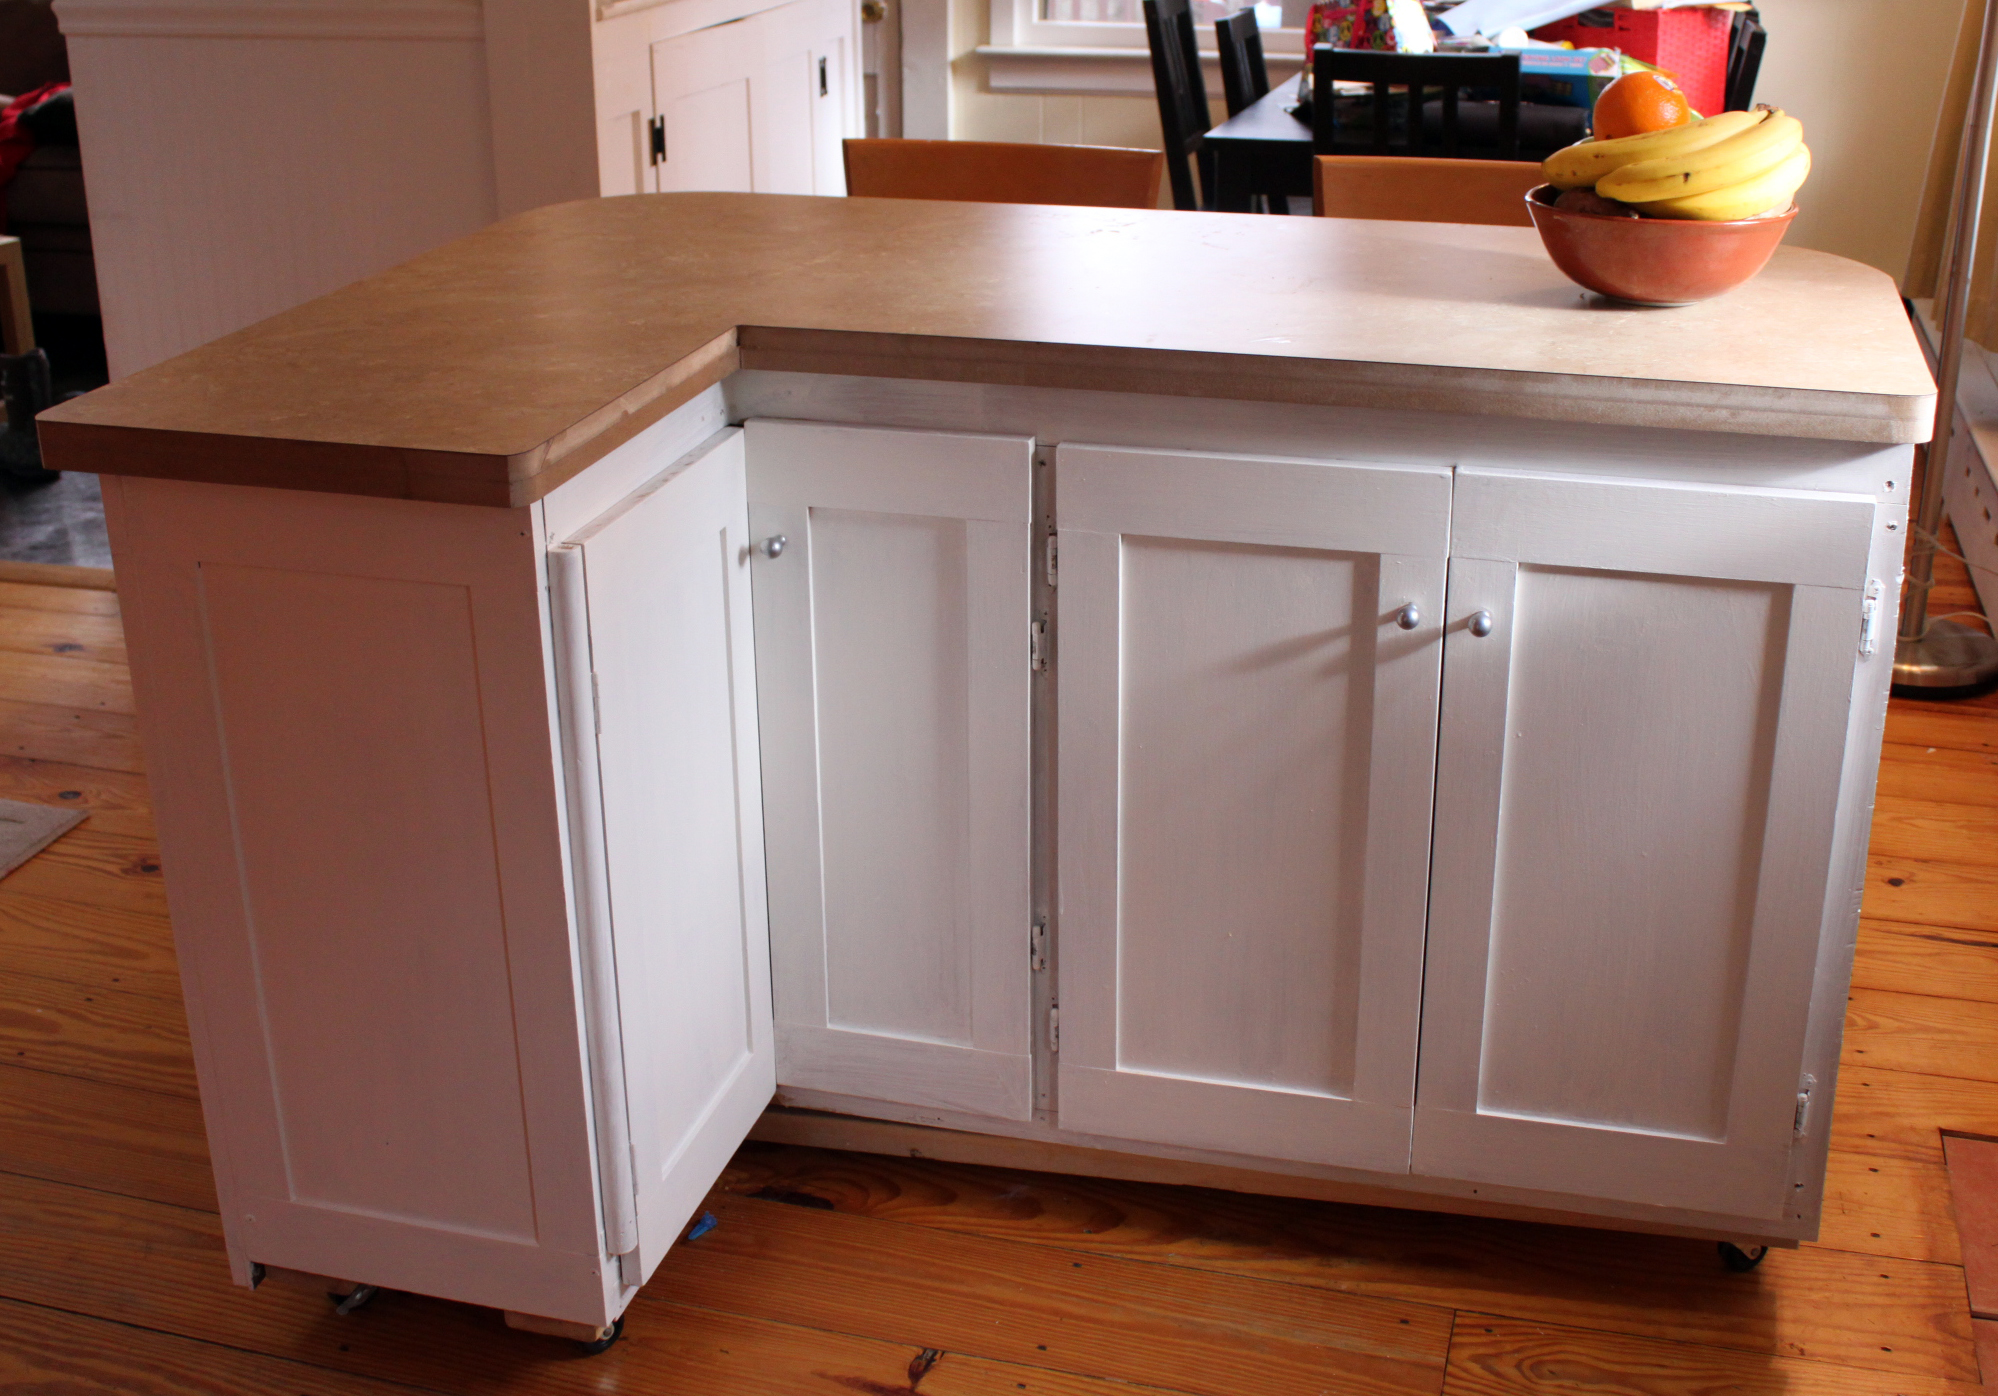 weeknd project low budget kitchen renovation welcome to how to build a diy kitchen island cherished bliss